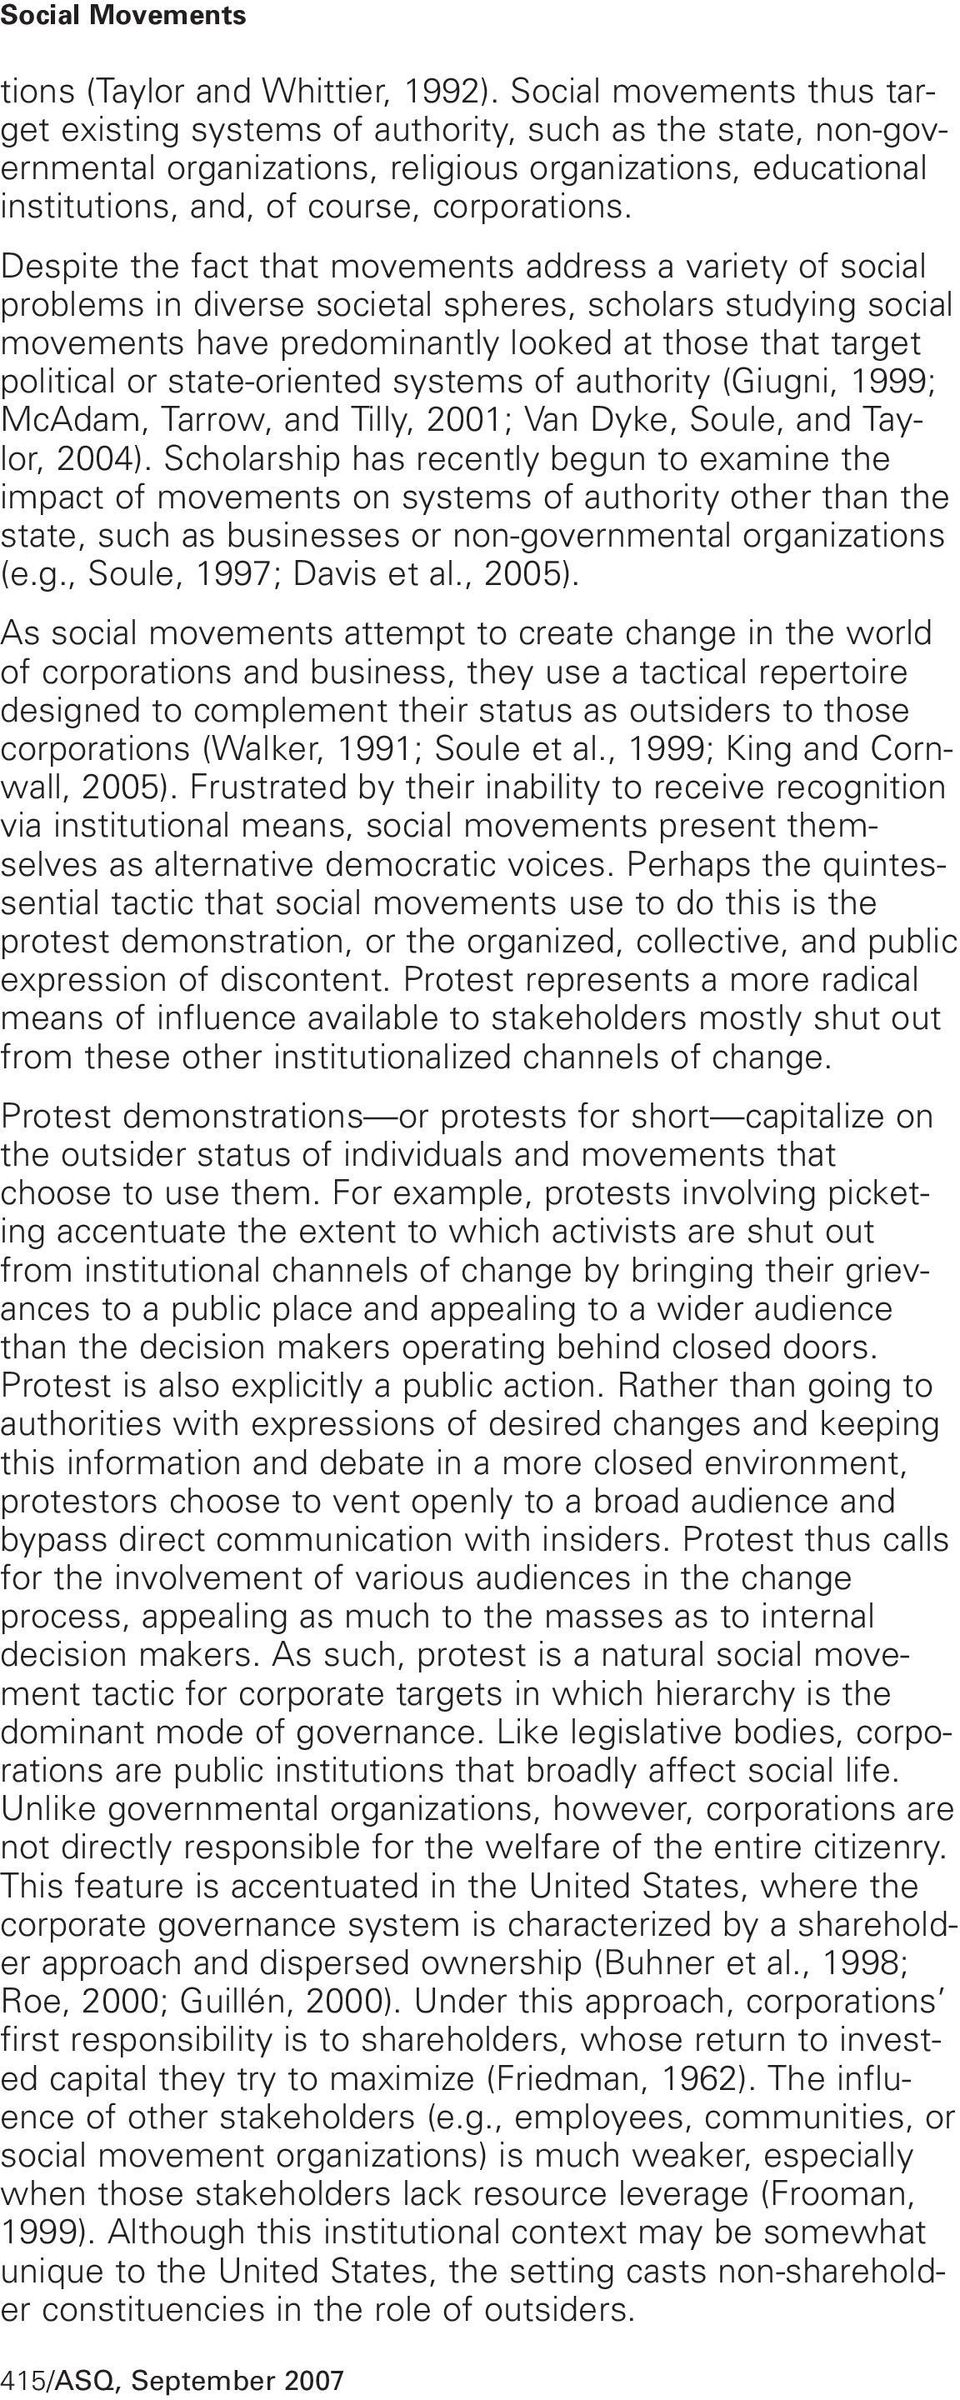 Despite the fact that movements address a variety of social problems in diverse societal spheres, scholars studying social movements have predominantly looked at those that target political or